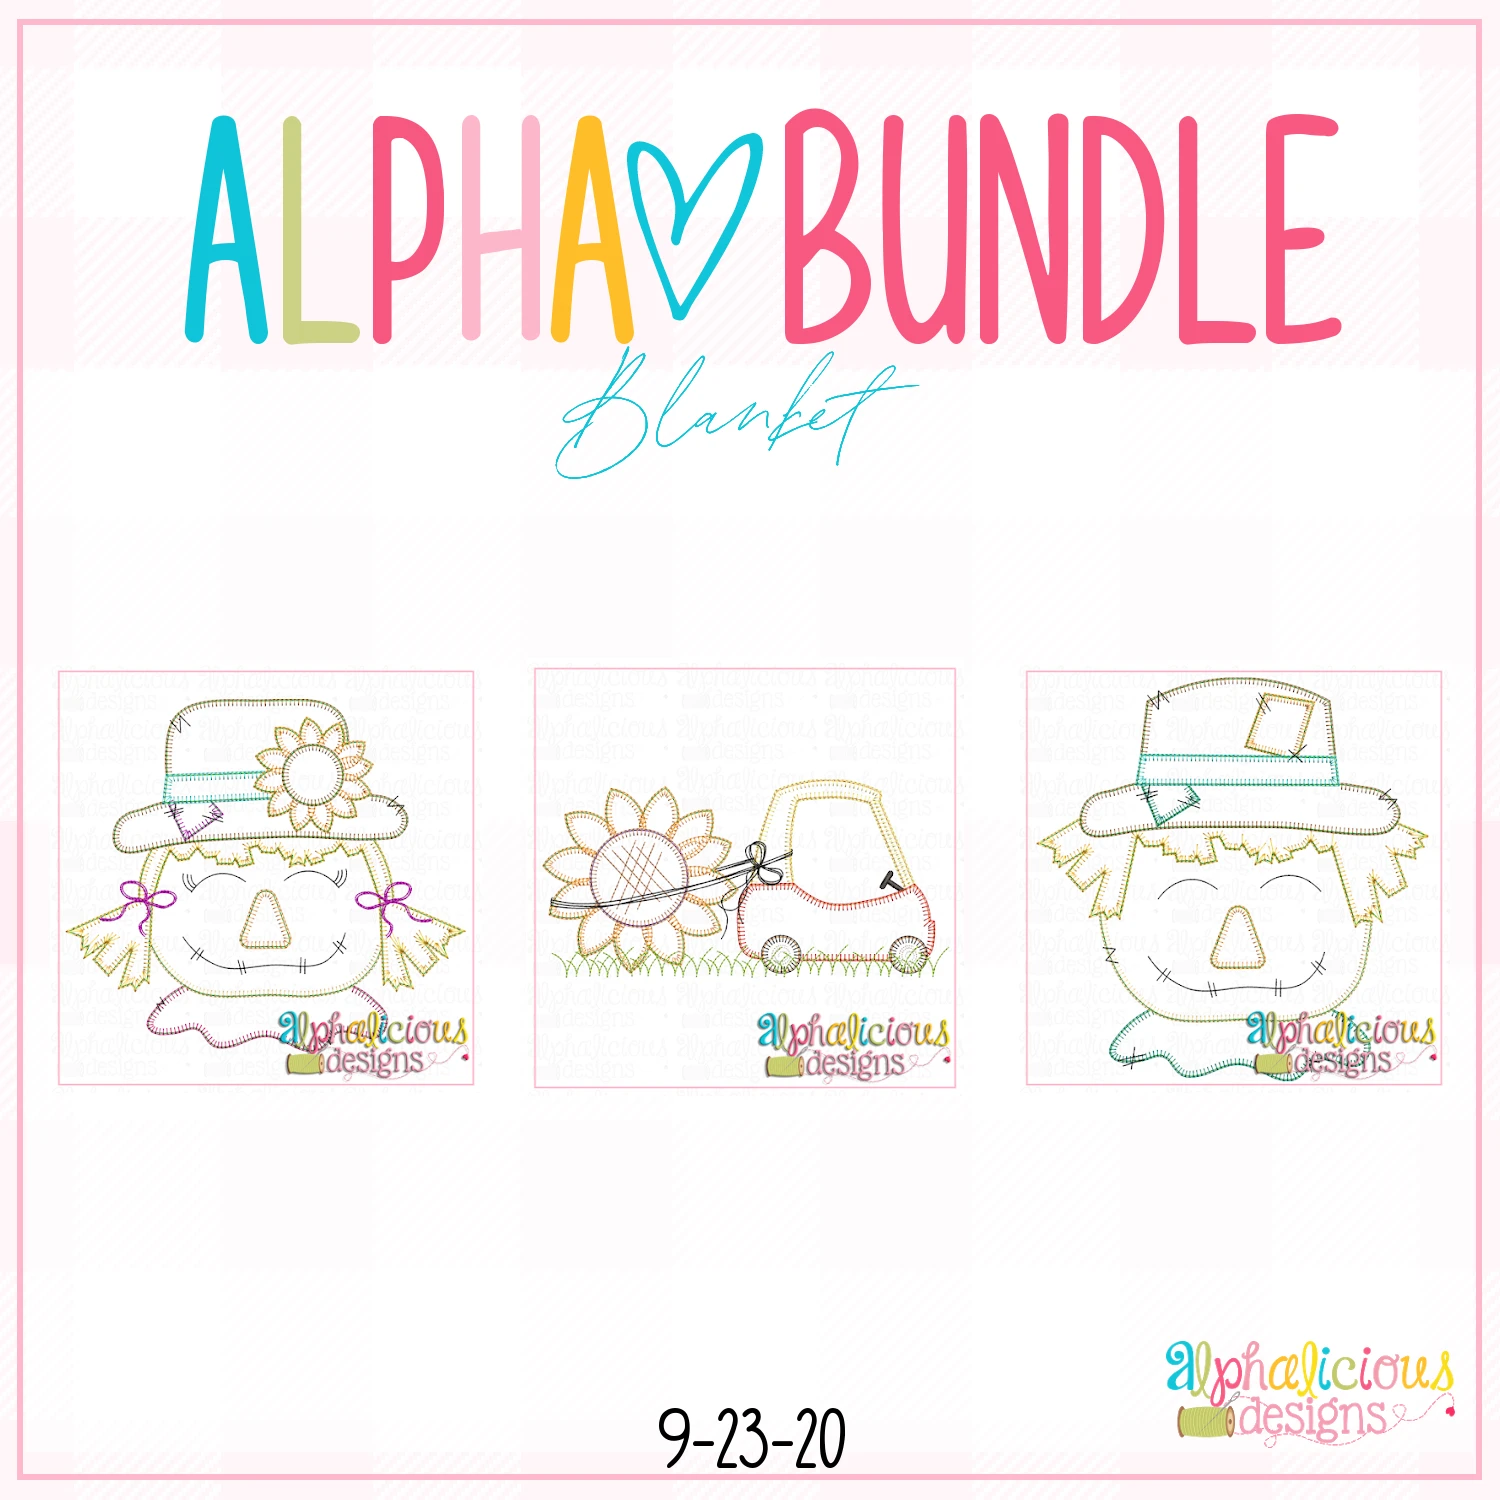 ALPHA BUNDLE-9/25/20 Release-Blanket Stitch